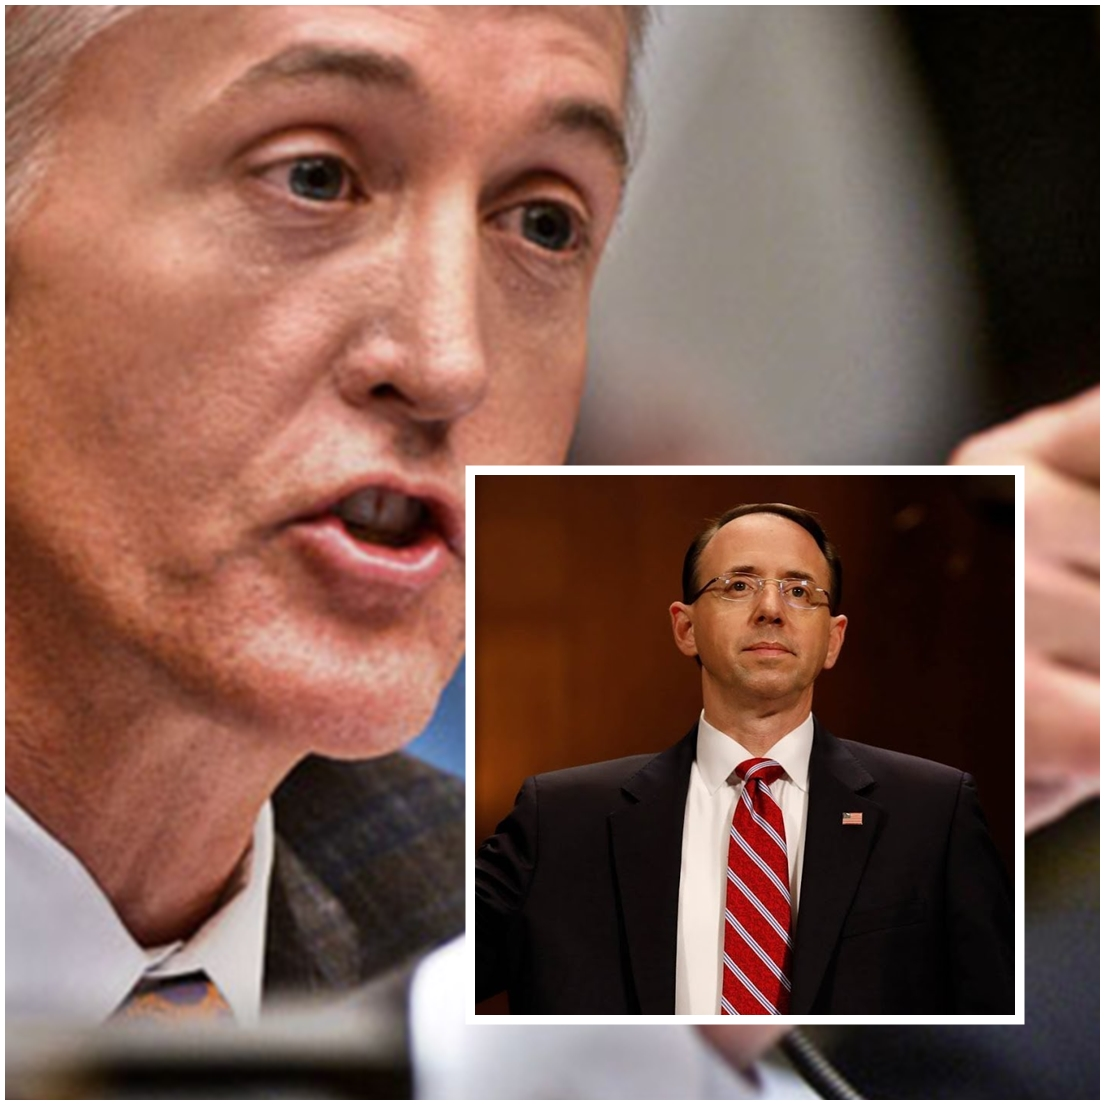 VIDEO: Trey Gowdy GRILLS Rosenstein On Corrupt 'Unbiased Special Counsel'--- And It's EPIC!